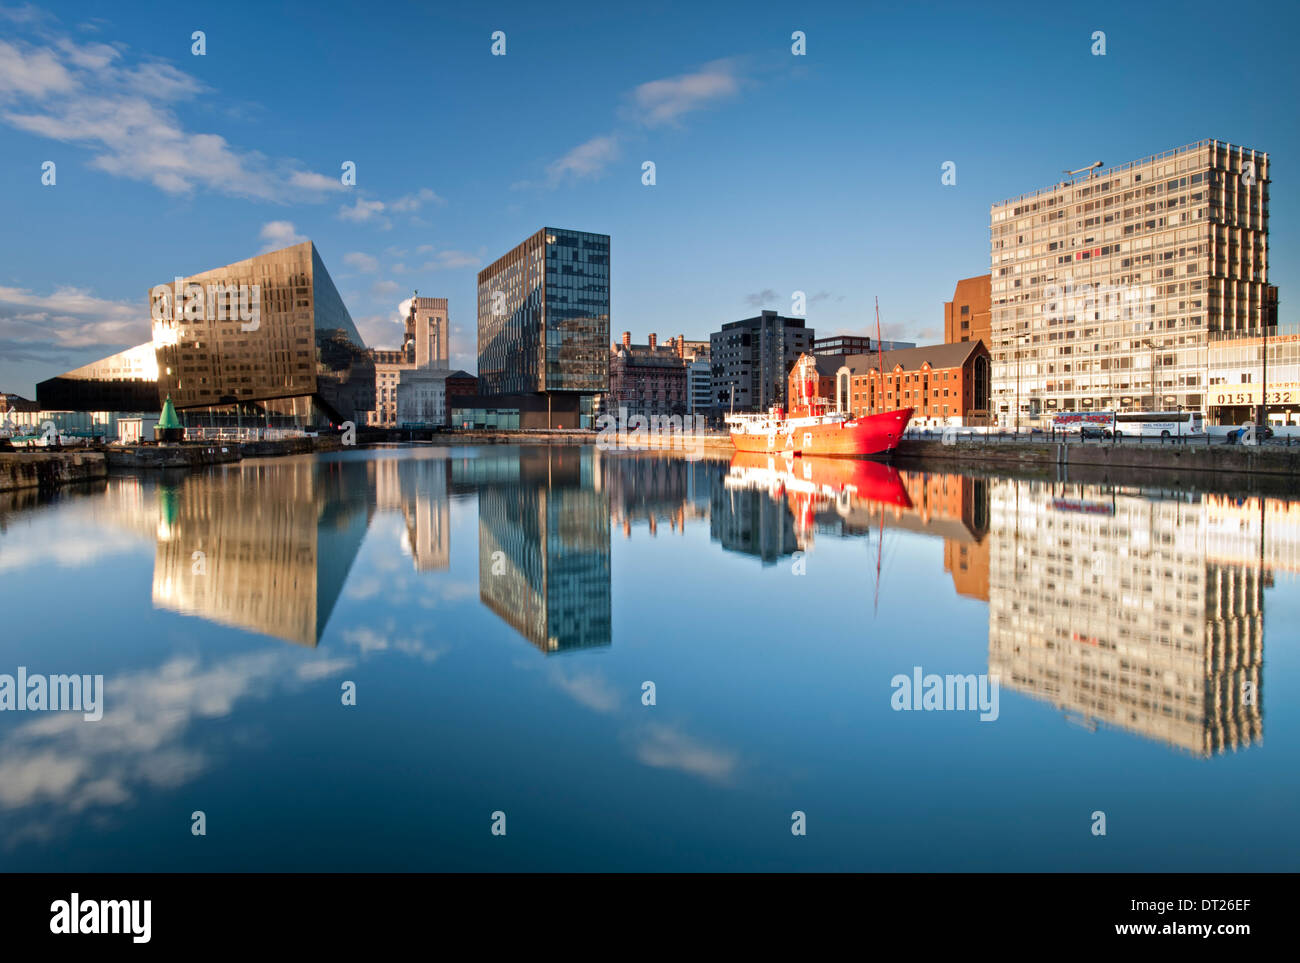 Appartements modernes, le Mersey Bar Lightship & Waterfront Buildings, Canning Dock, Liverpool, Merseyside, England, UK Photo Stock